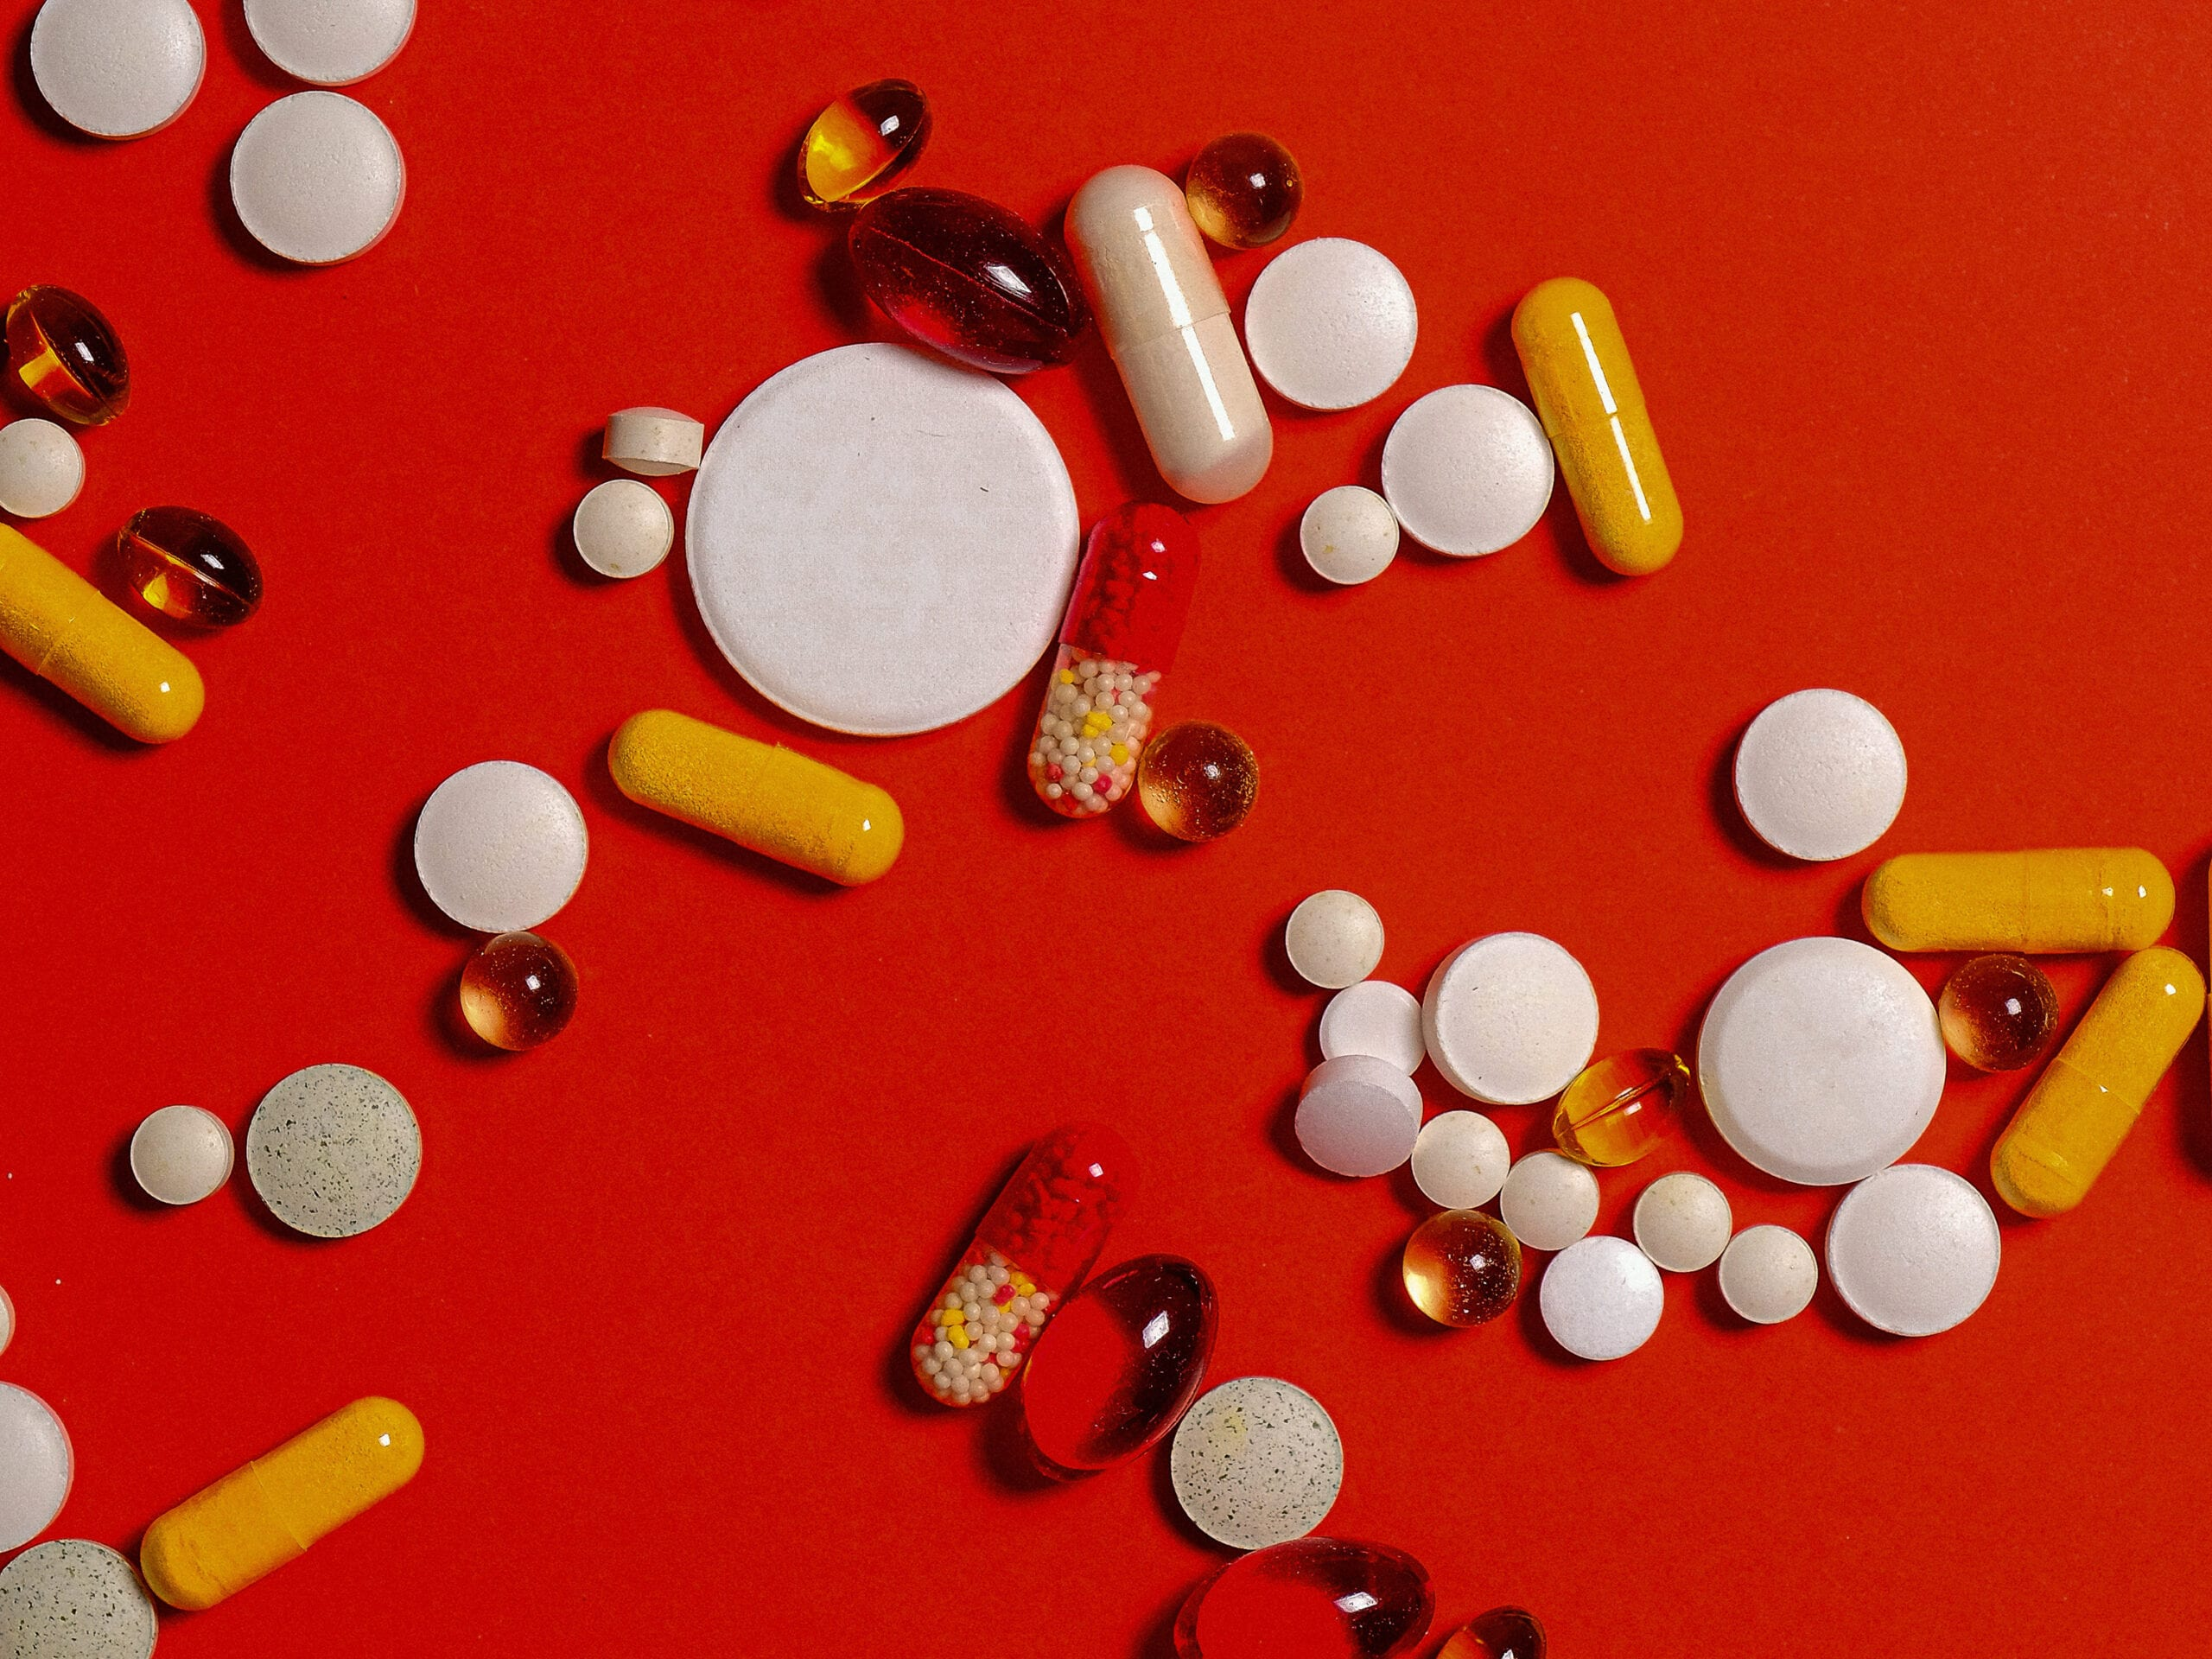 A variety of medicines. RDM has extensive experience in healthcare law and medical and pharmaceutical litigation.